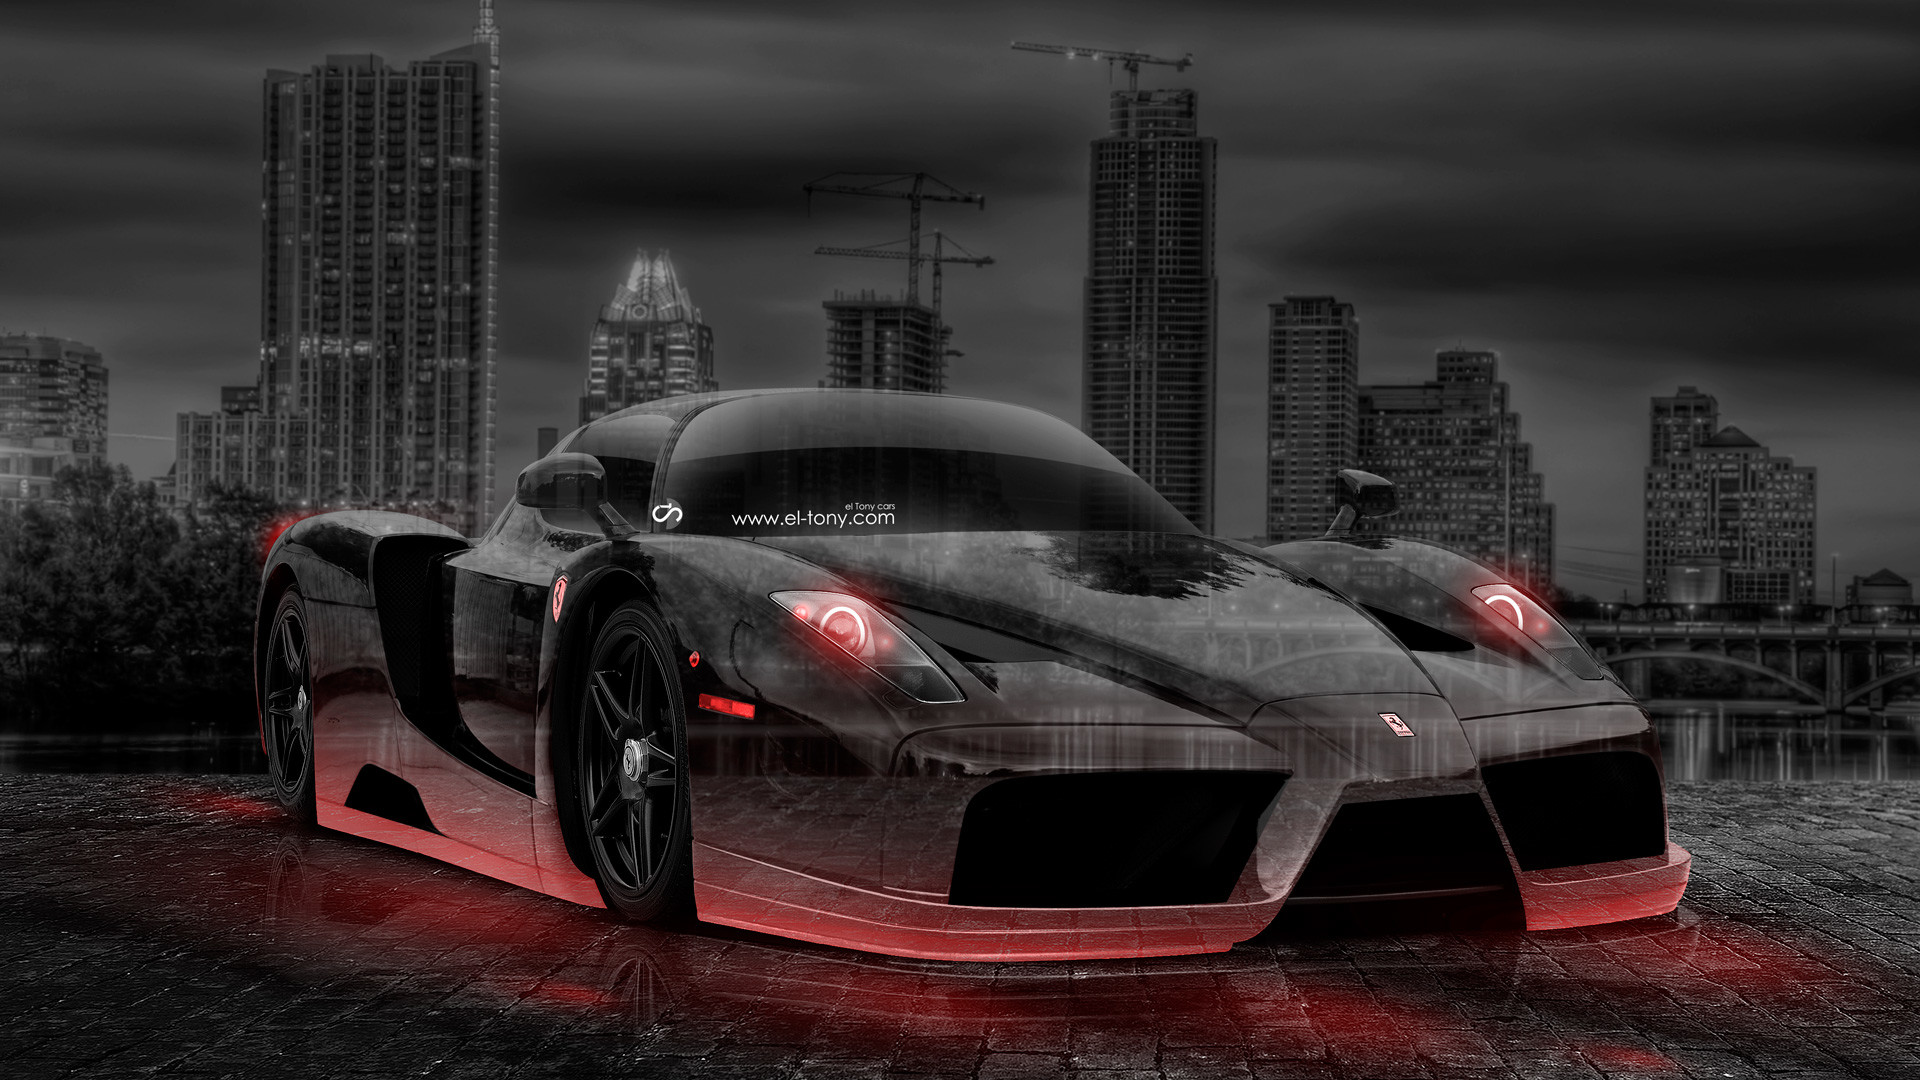 1920x1080 Ferrari-Enzo-Crystal-City-Car-2014-Orange-Neon-